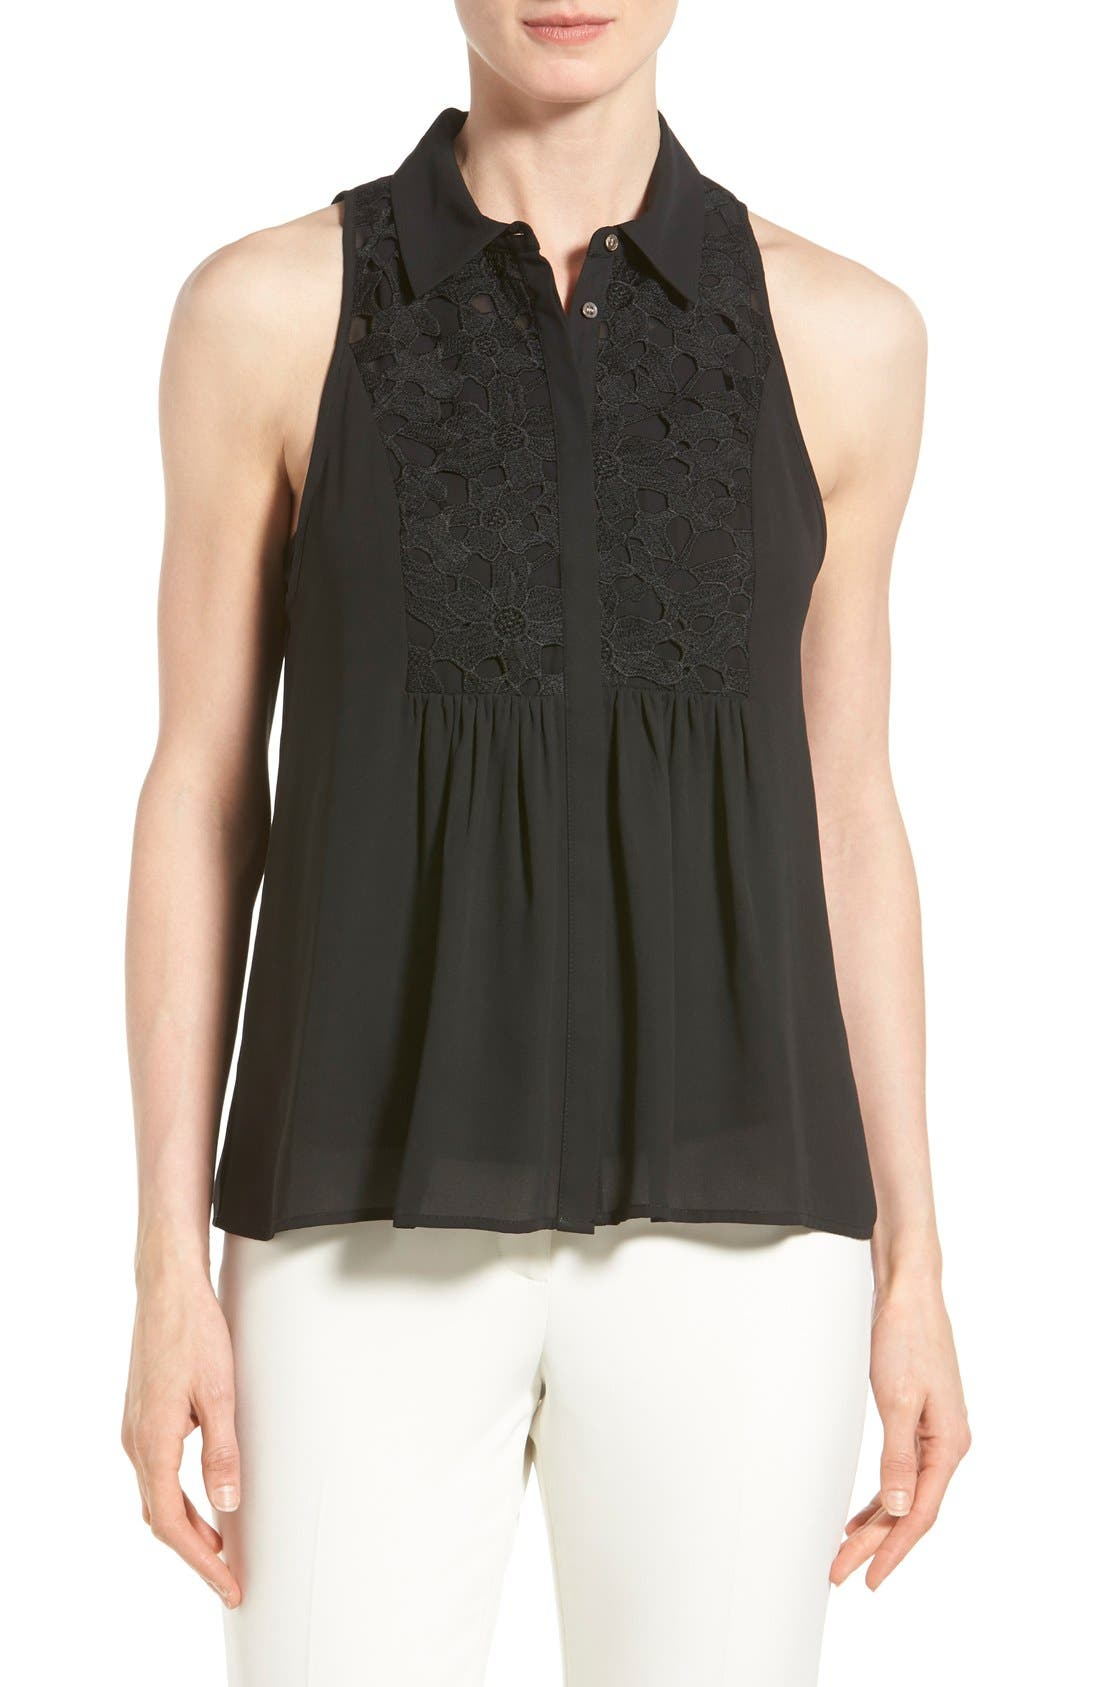 Main Image - Vince Camuto Lace Trim Sleeveless Blouse